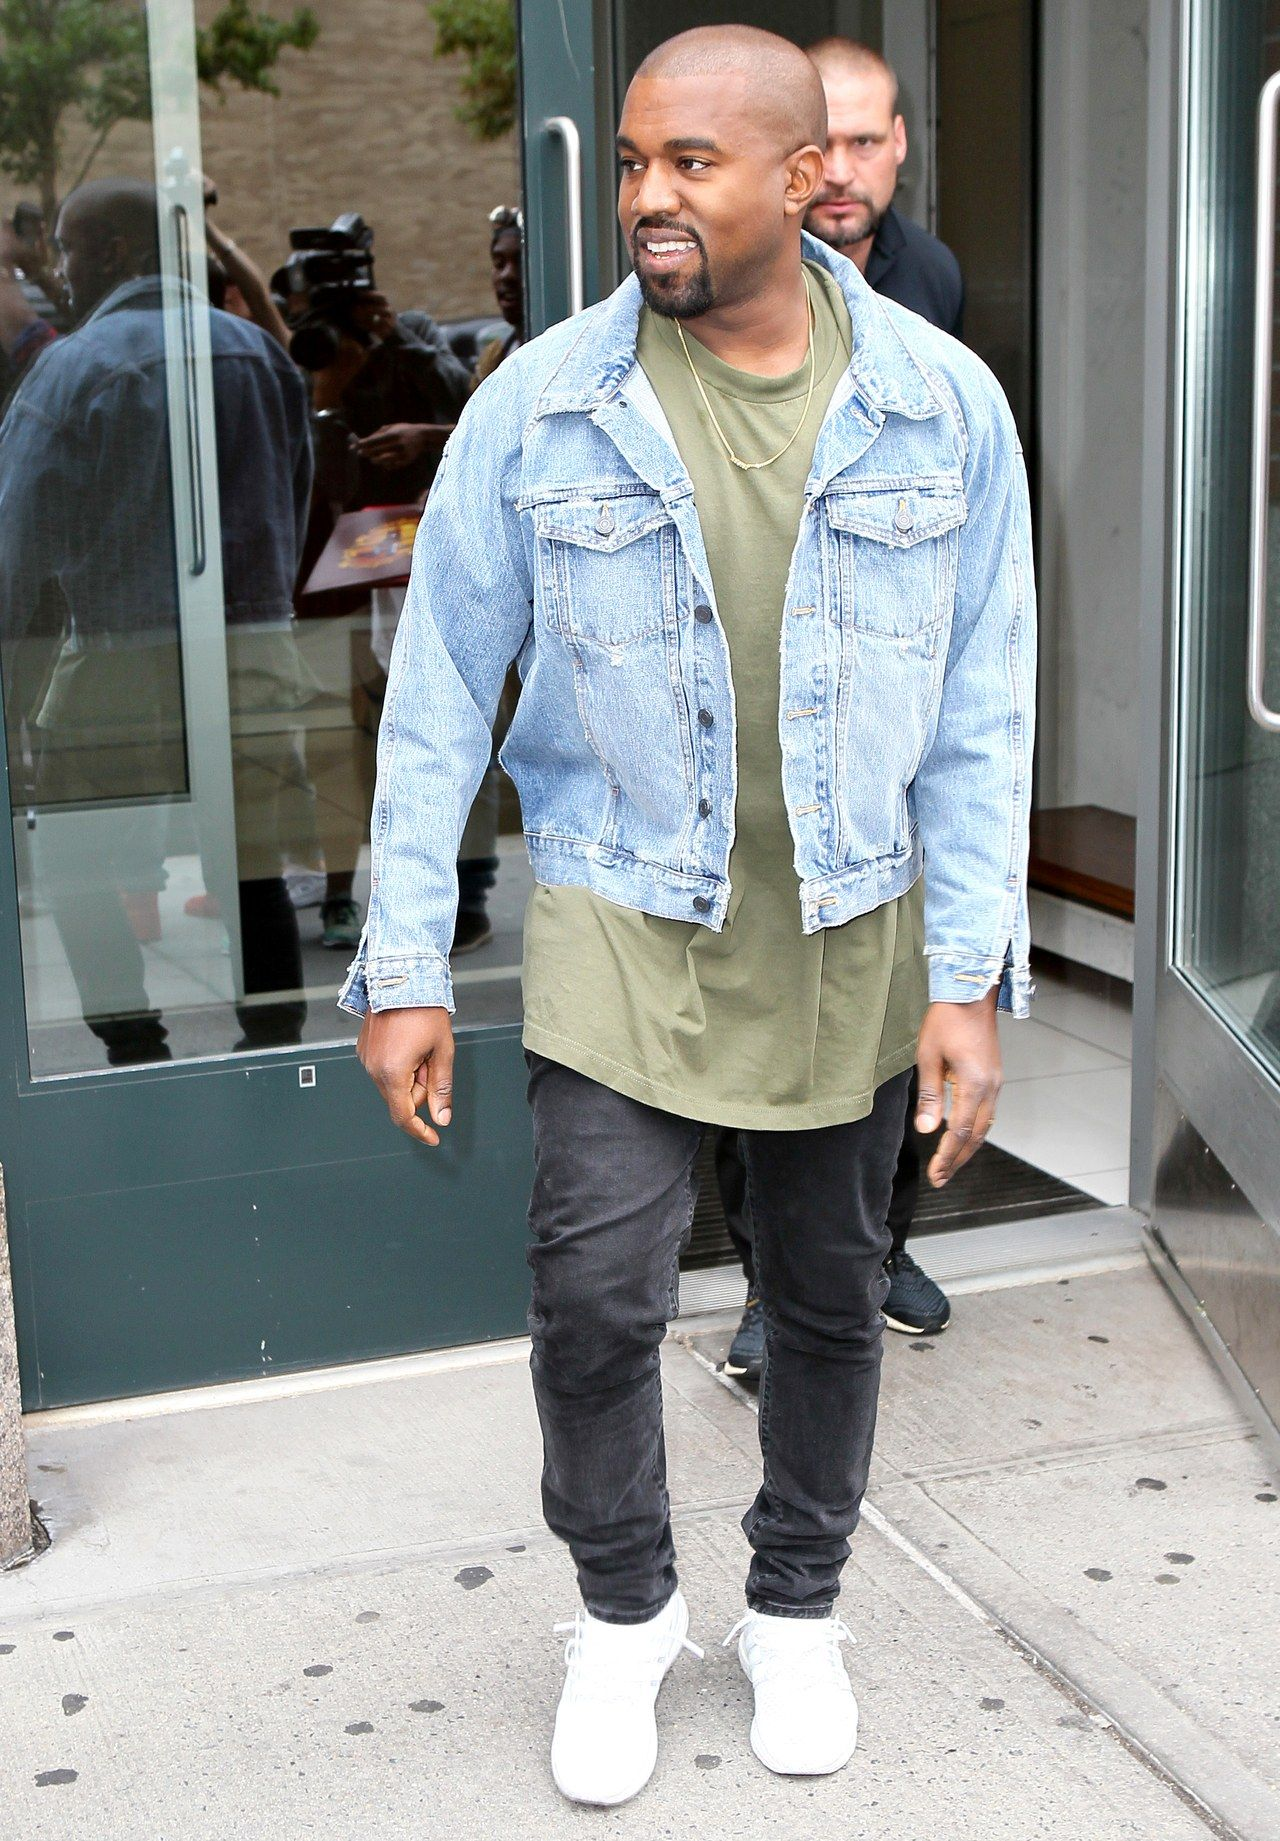 Pin By Rg Rm On Kanye Fashion Kanye West Outfits Kanye Fashion Kanye West Style